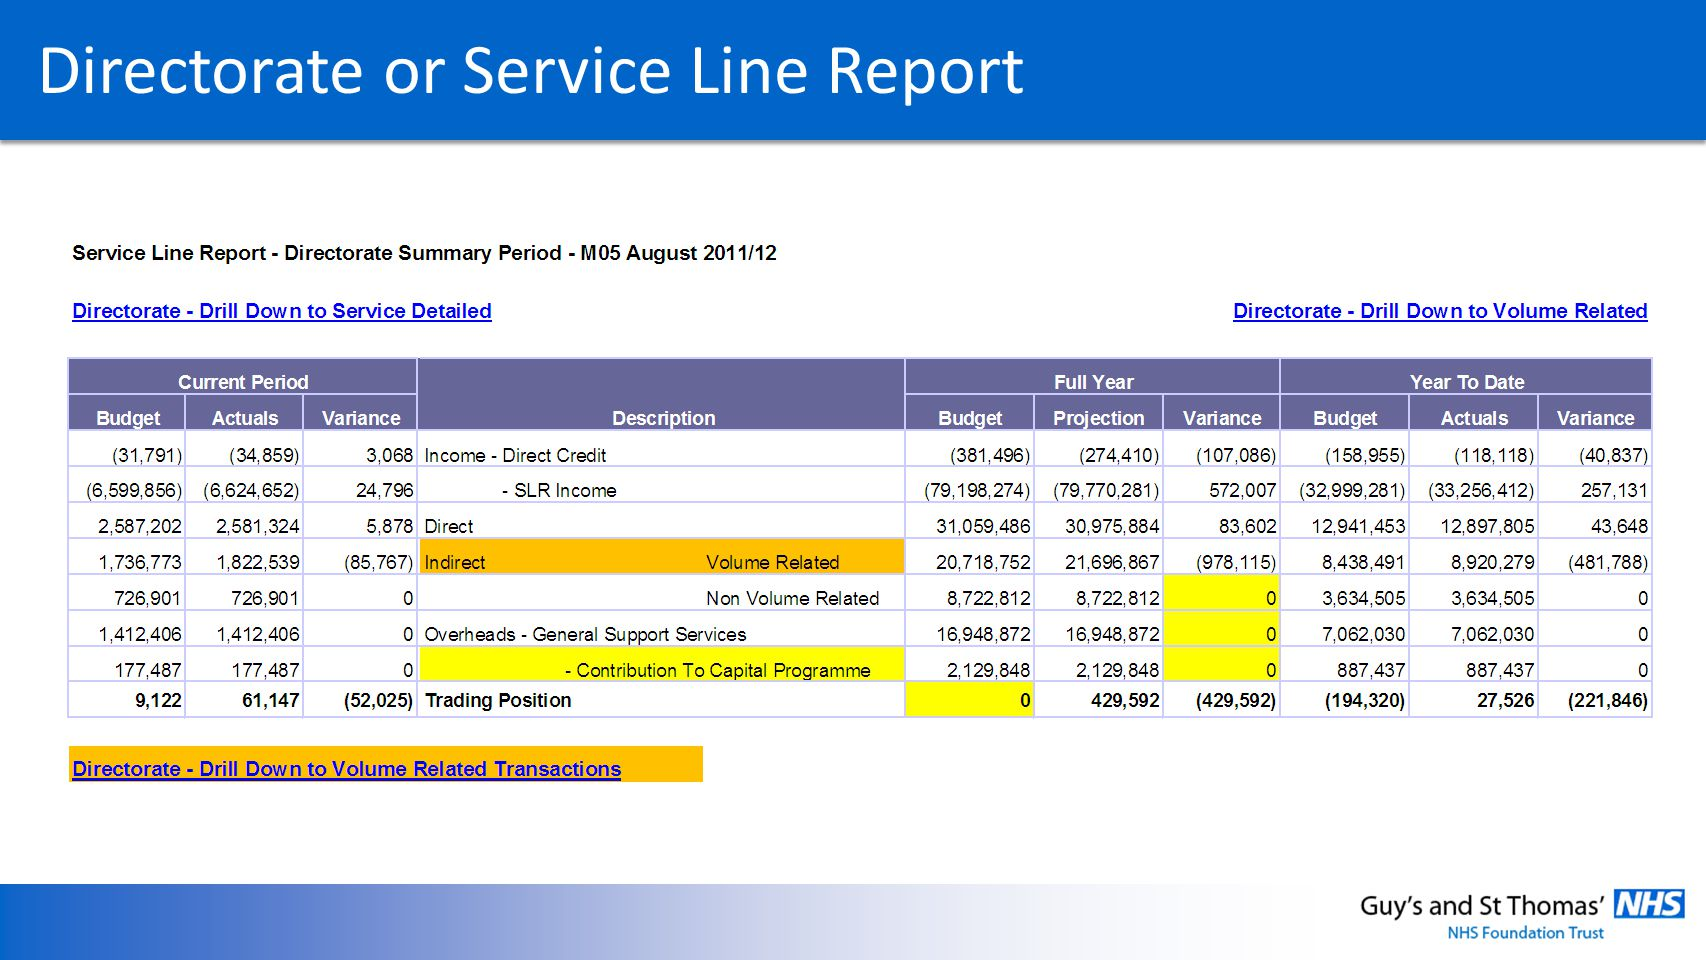 Directorate or Service Line Report